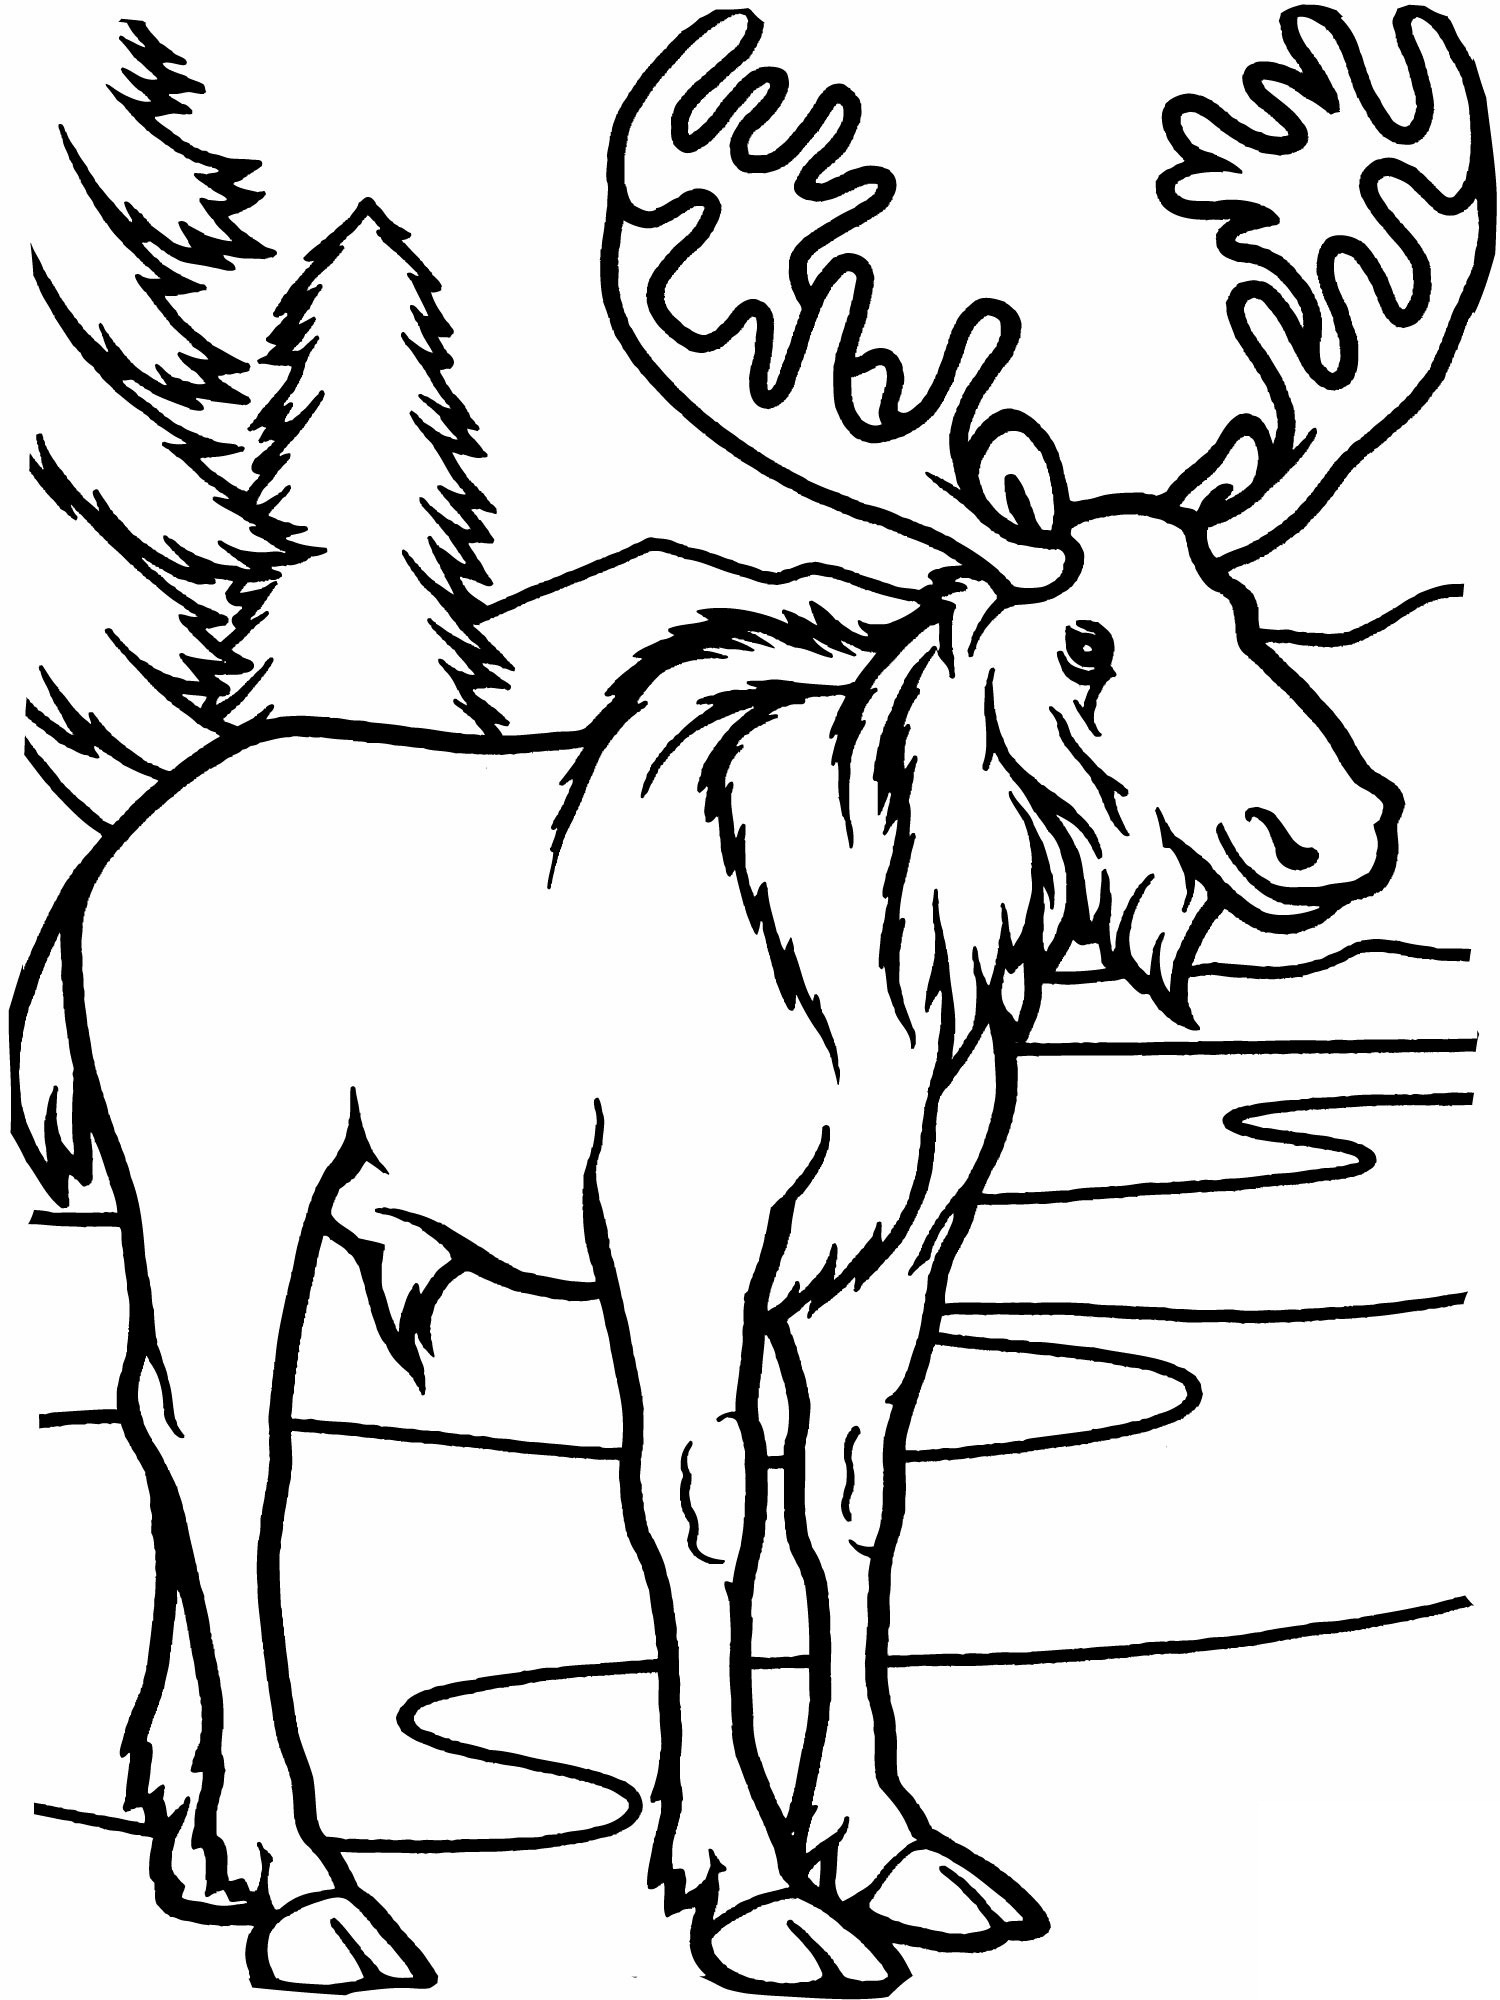 moose coloring page moose coloring pages to download and print for free moose coloring page